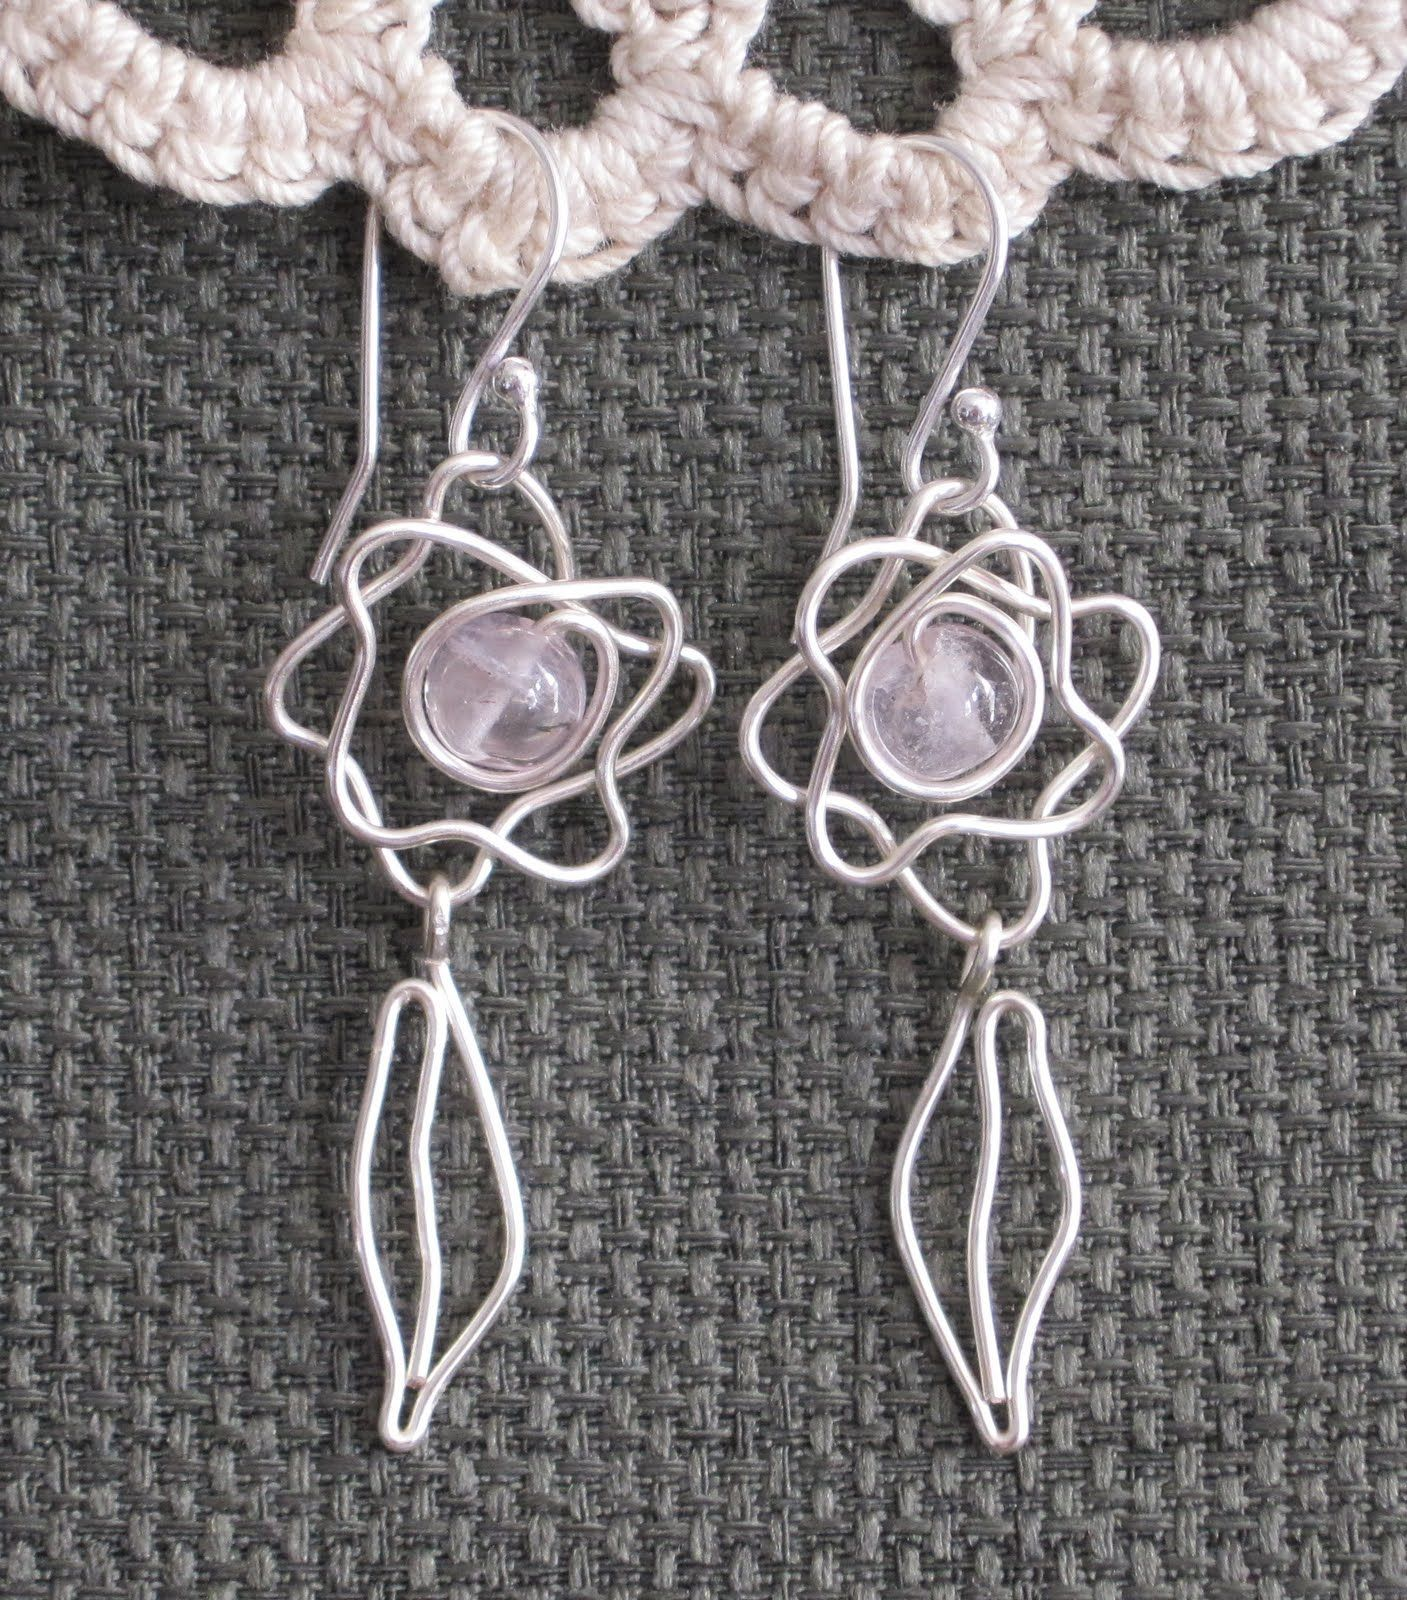 Doodle Wire Earrings Tutorials Just for Fun! - The Beading Gem\'s ...